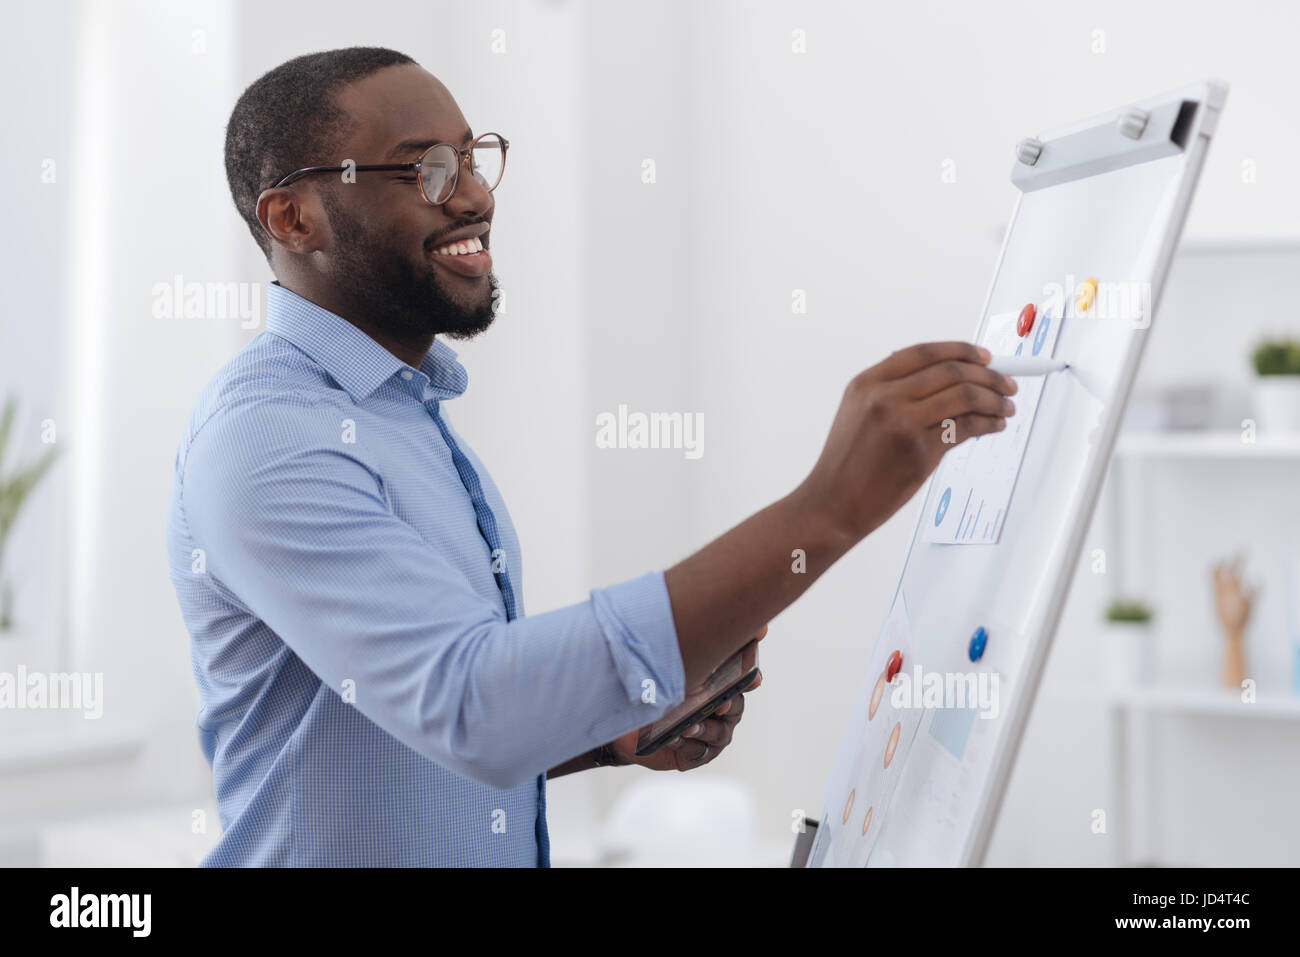 Positive creative man presenting a report - Stock Image